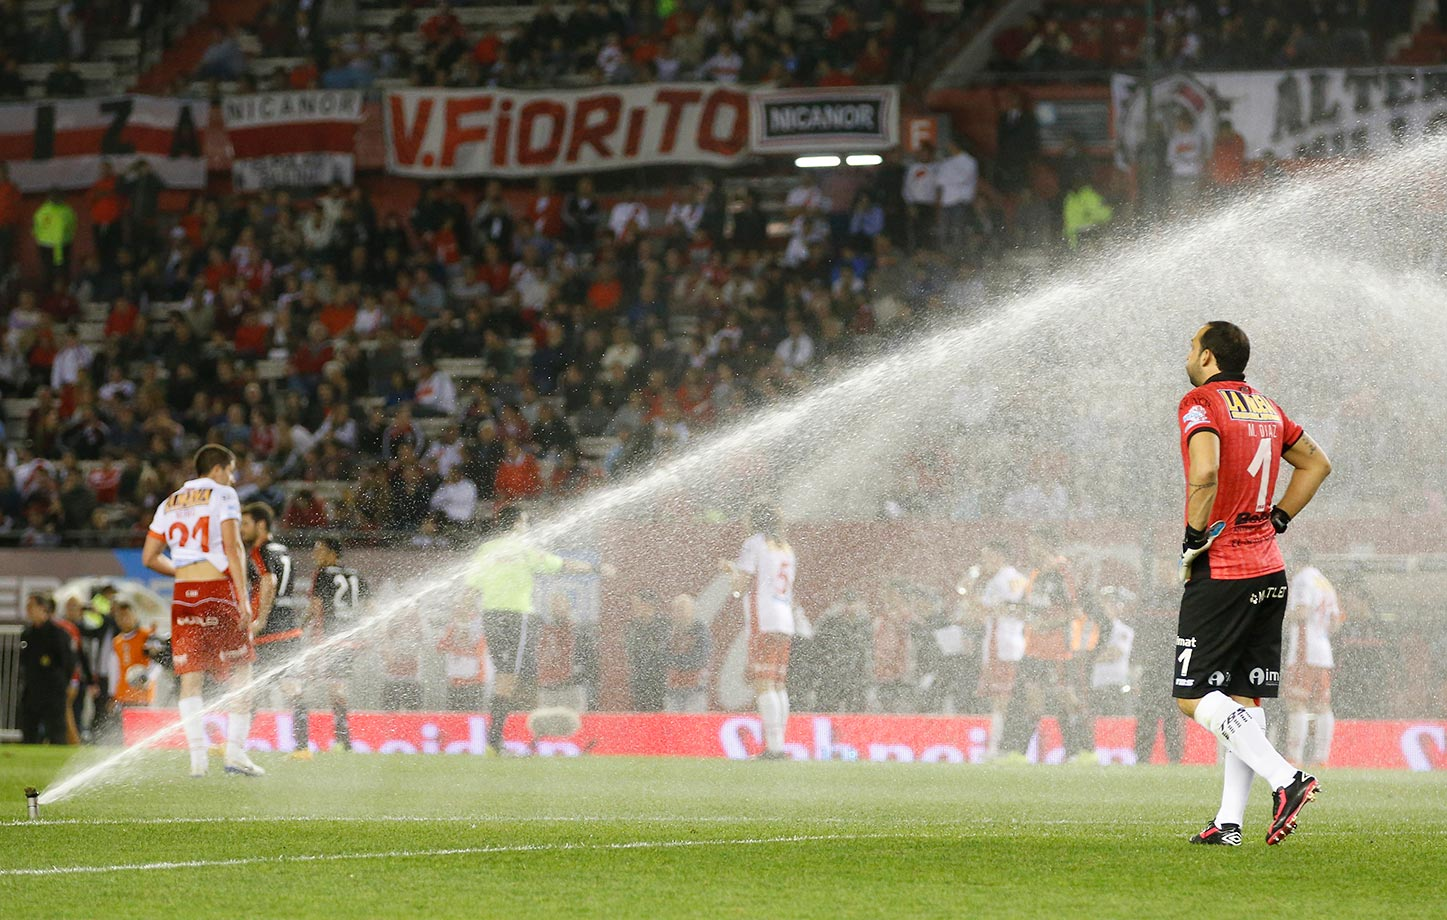 Marcos Diaz, the goalkeeper of Huracan, gets sprayed by the sprinklers that were mistakenly turned on during a match against River Plate in Buenos Aires.